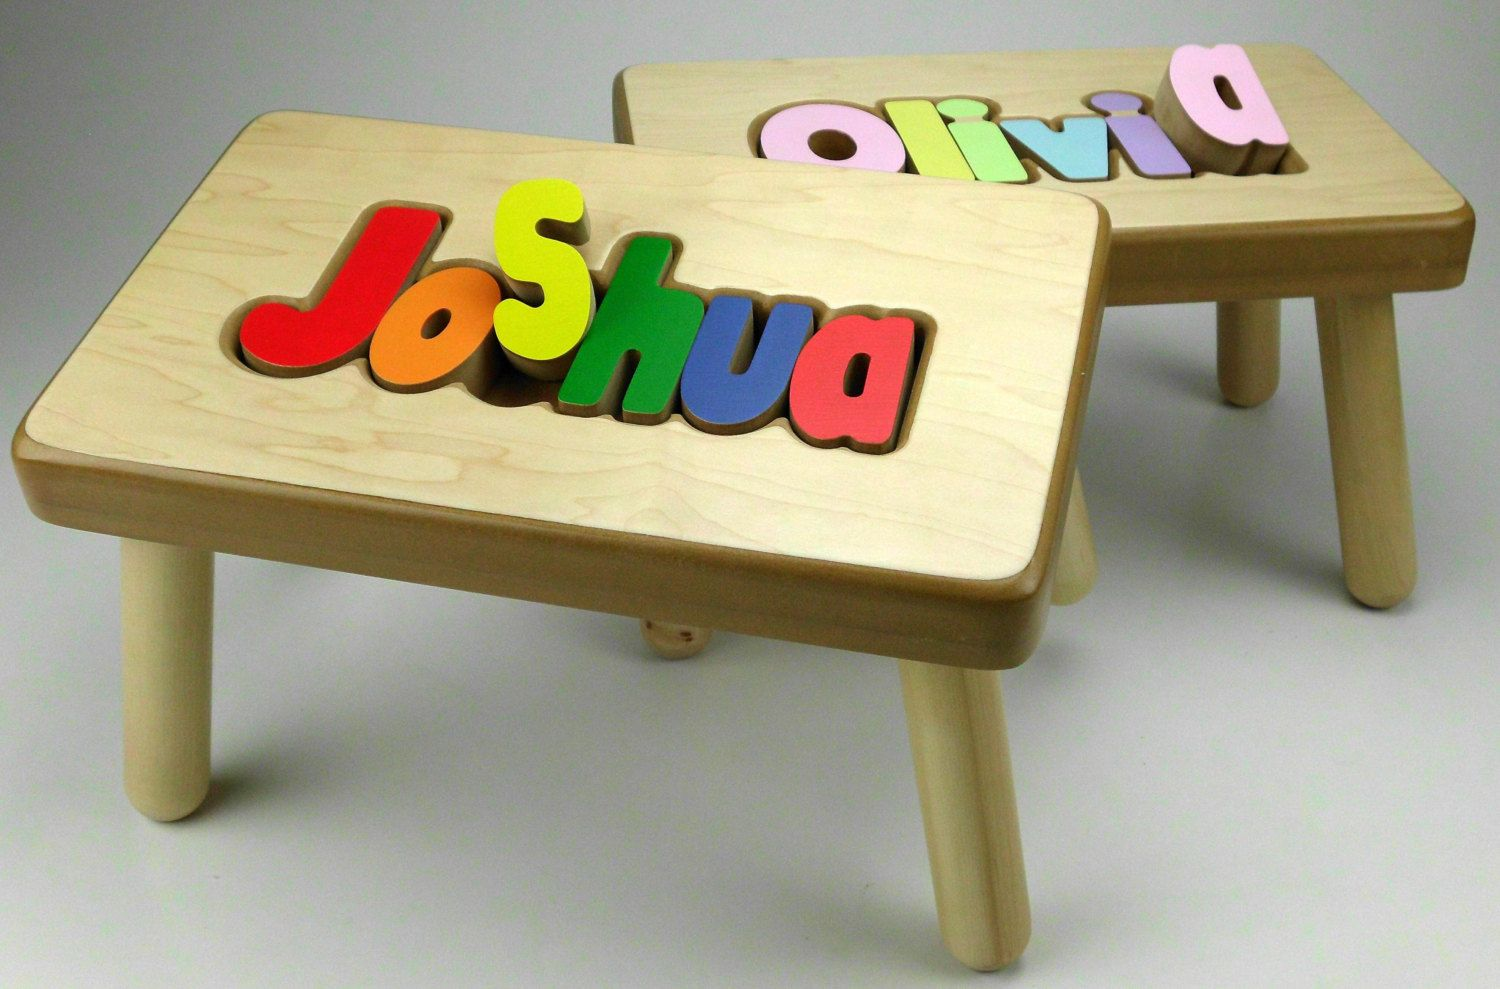 Personalized name puzzle stool by timsuniqueproducts on etsy 3988 personalized name puzzle stool gifts to give negle Gallery